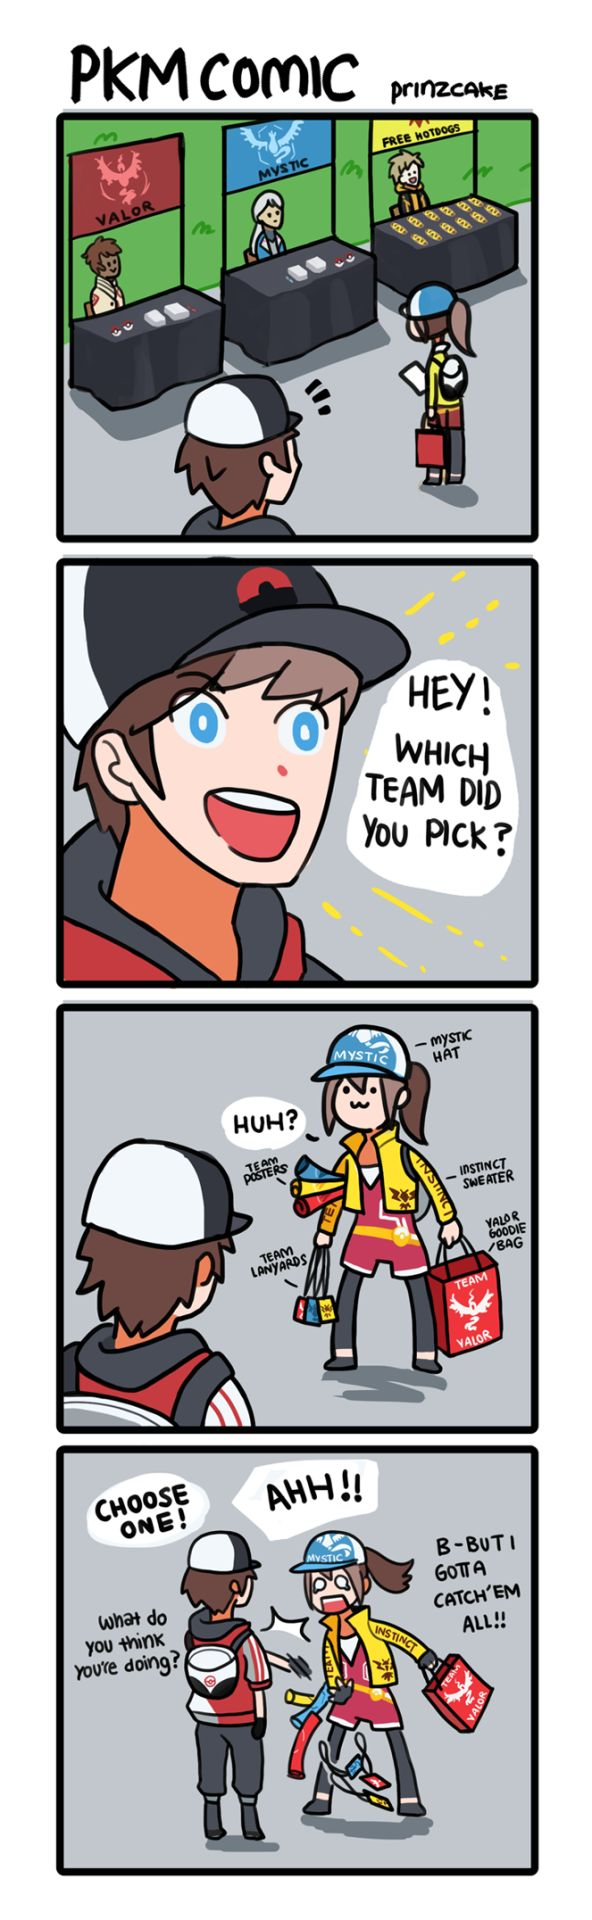 Prinz Cake : Photo >>>> UGH, I can relate! I had trouble choosing between Instinct and Mystic, but in the end I chose Mystic.